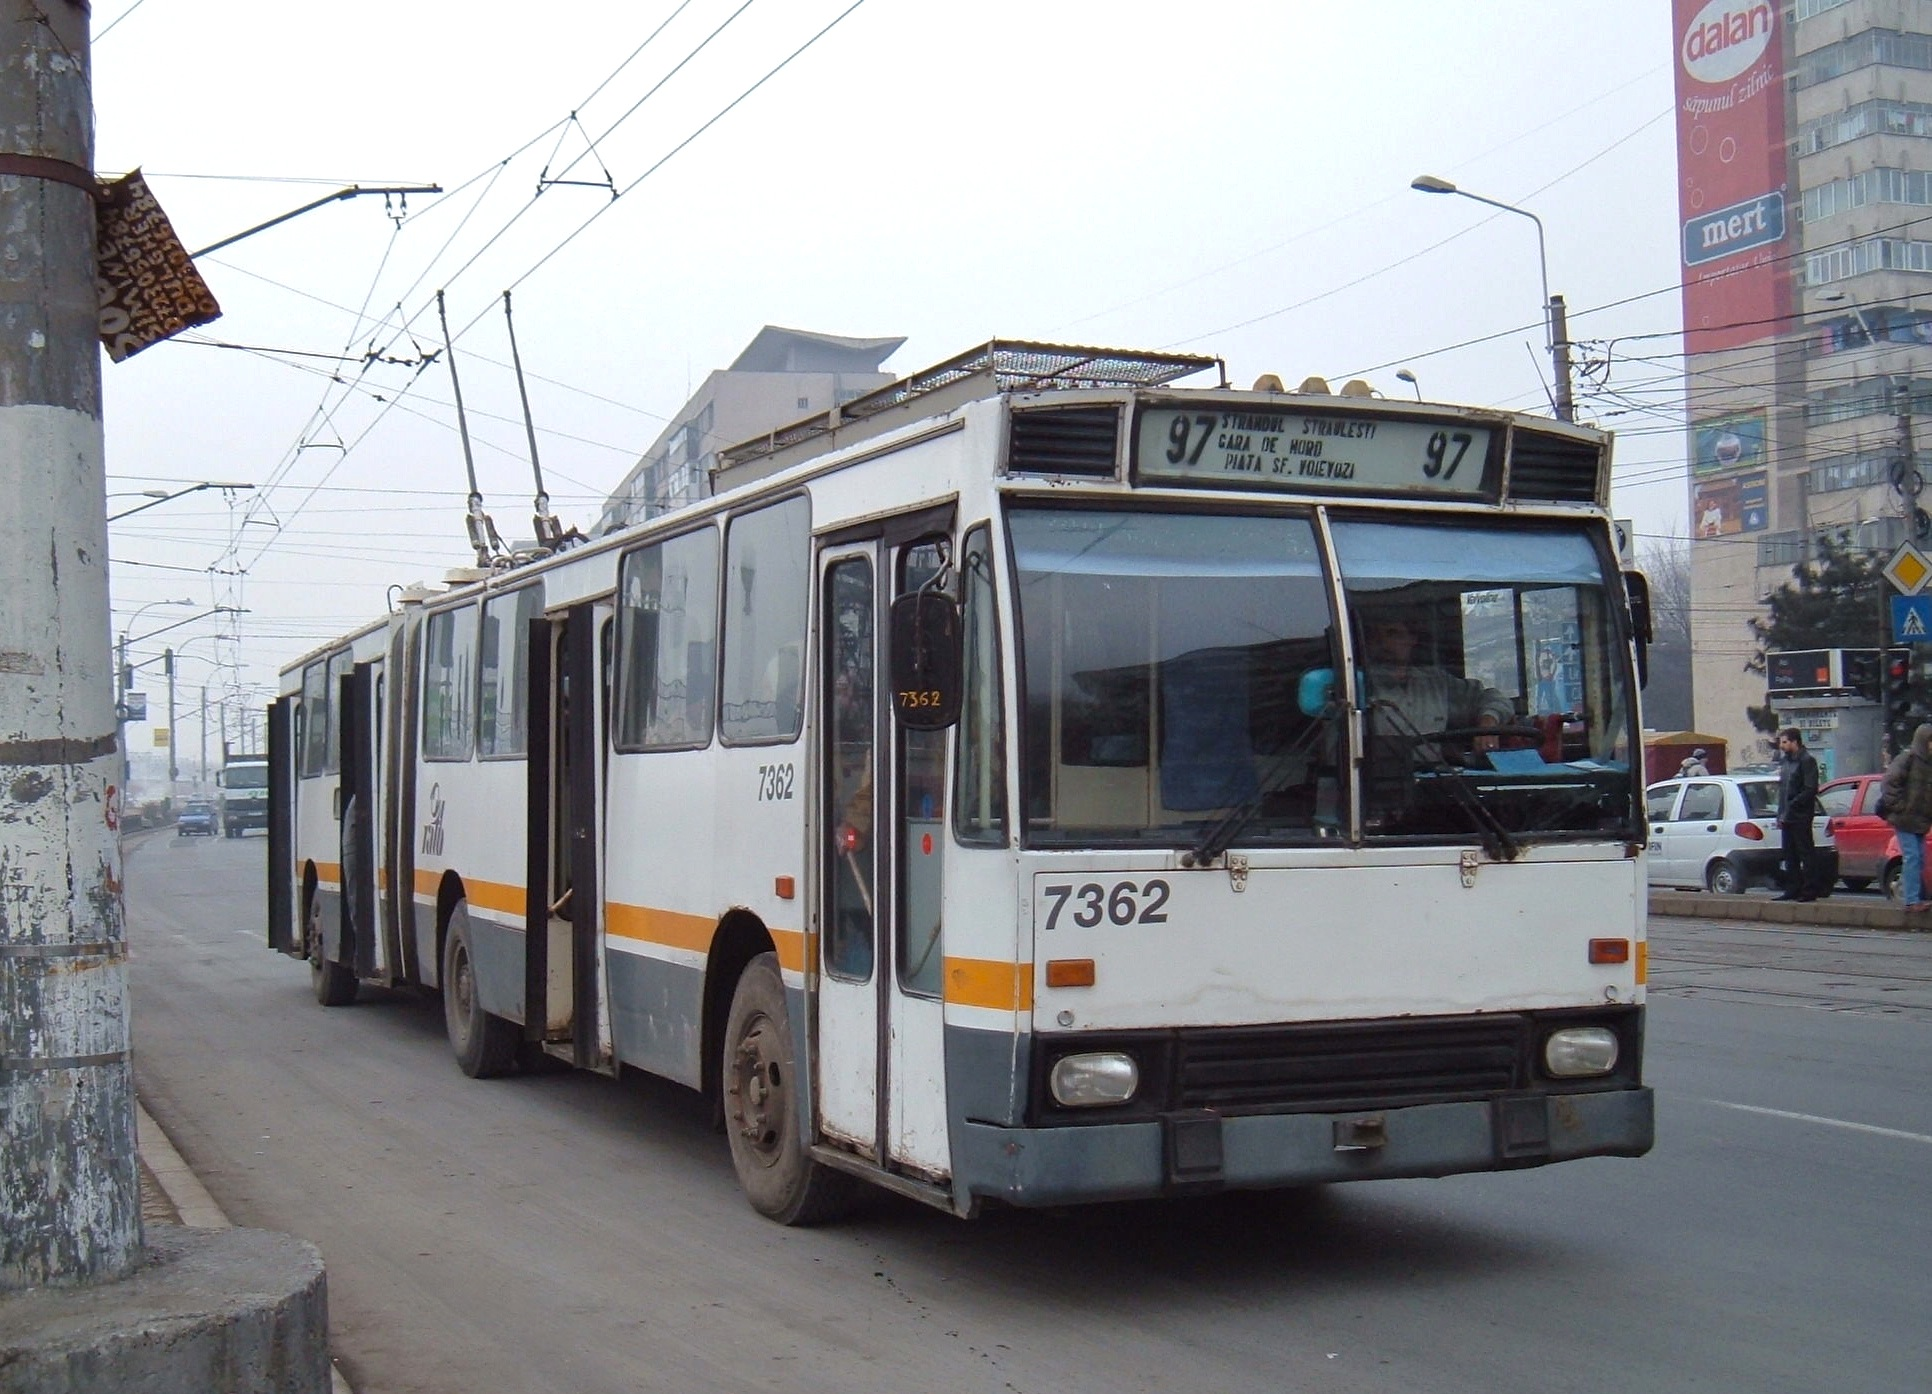 El juego de las imagenes-https://upload.wikimedia.org/wikipedia/commons/d/dd/Bucharest_DAC_articulated_trolleybus_7362_in_2006.jpg